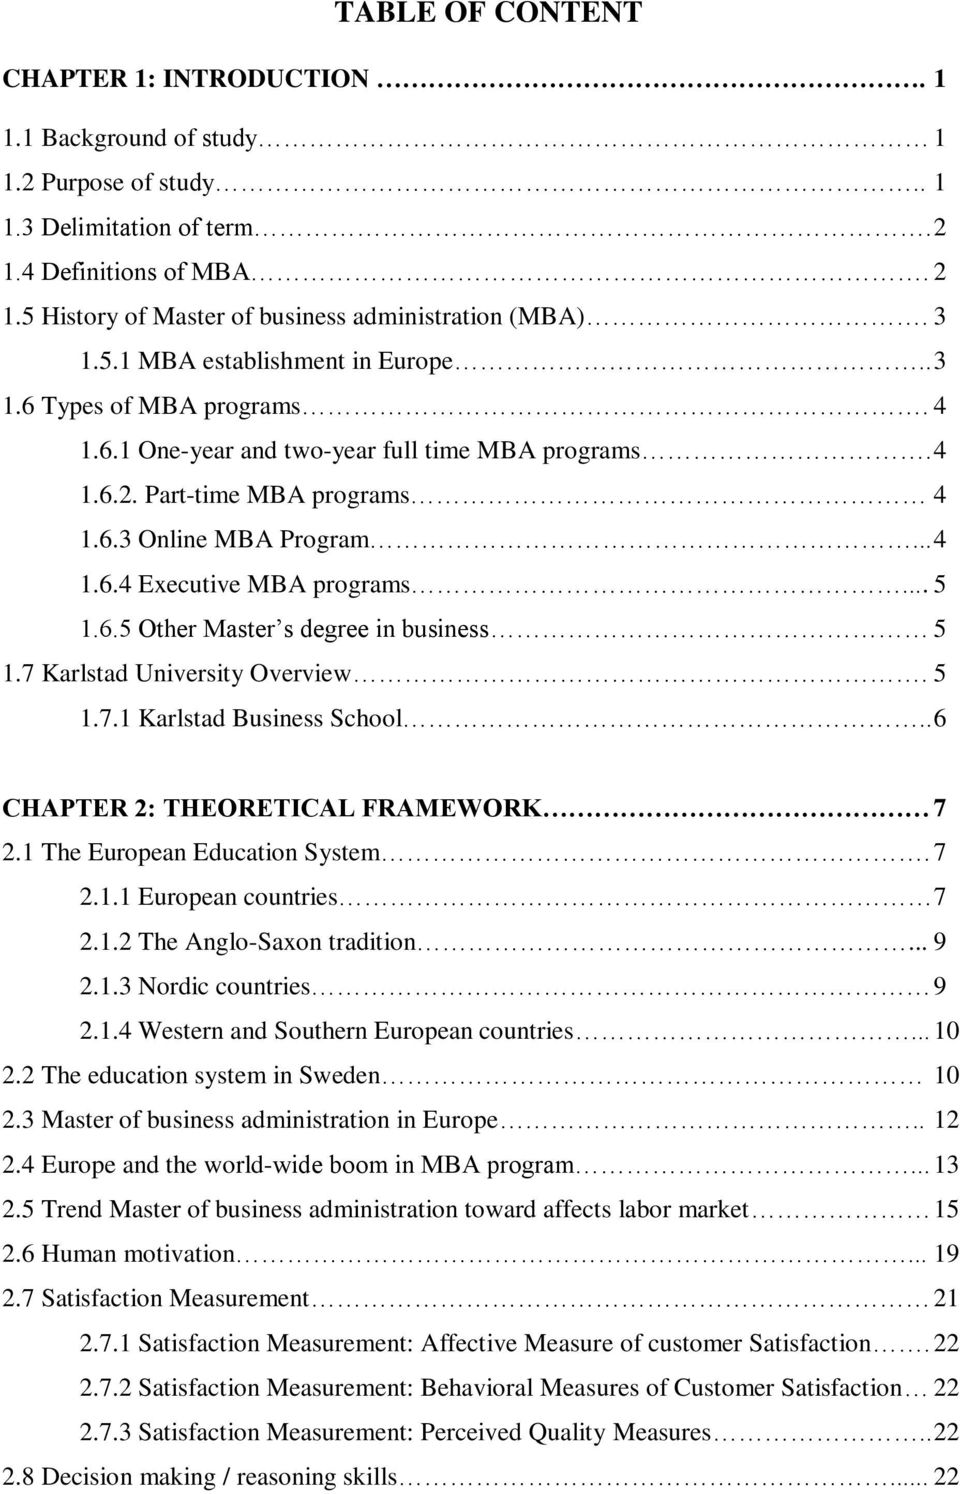 .. 5 1.6.5 Other Master s degree in business 5 1.7 Karlstad University Overview. 5 1.7.1 Karlstad Business School.. 6 CHAPTER 2: THEORETICAL FRAMEWORK 7 2.1 The European Education System. 7 2.1.1 European countries 7 2.